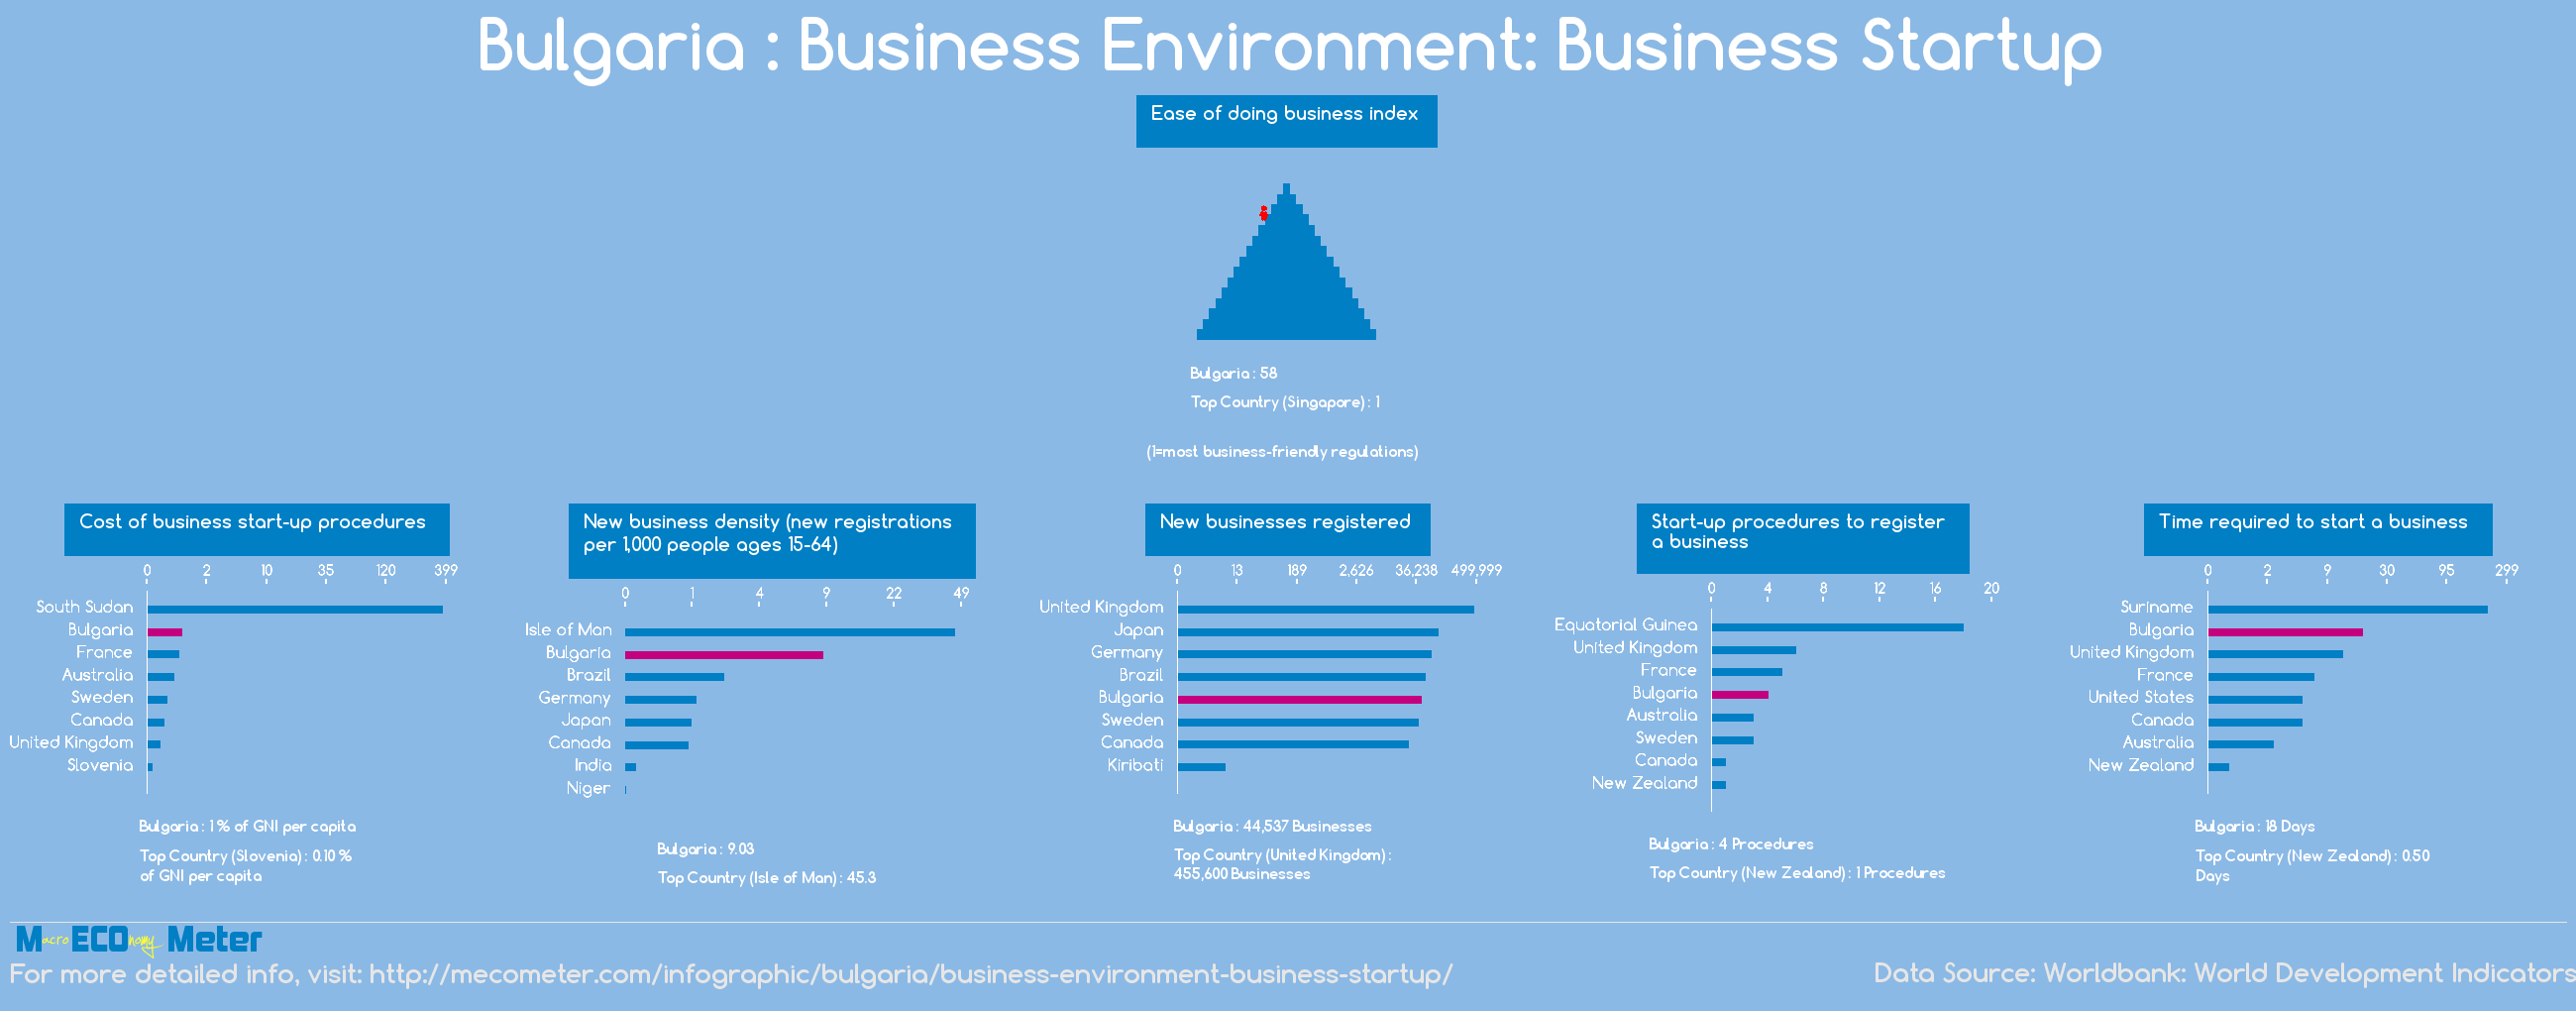 Bulgaria : Business Environment: Business Startup